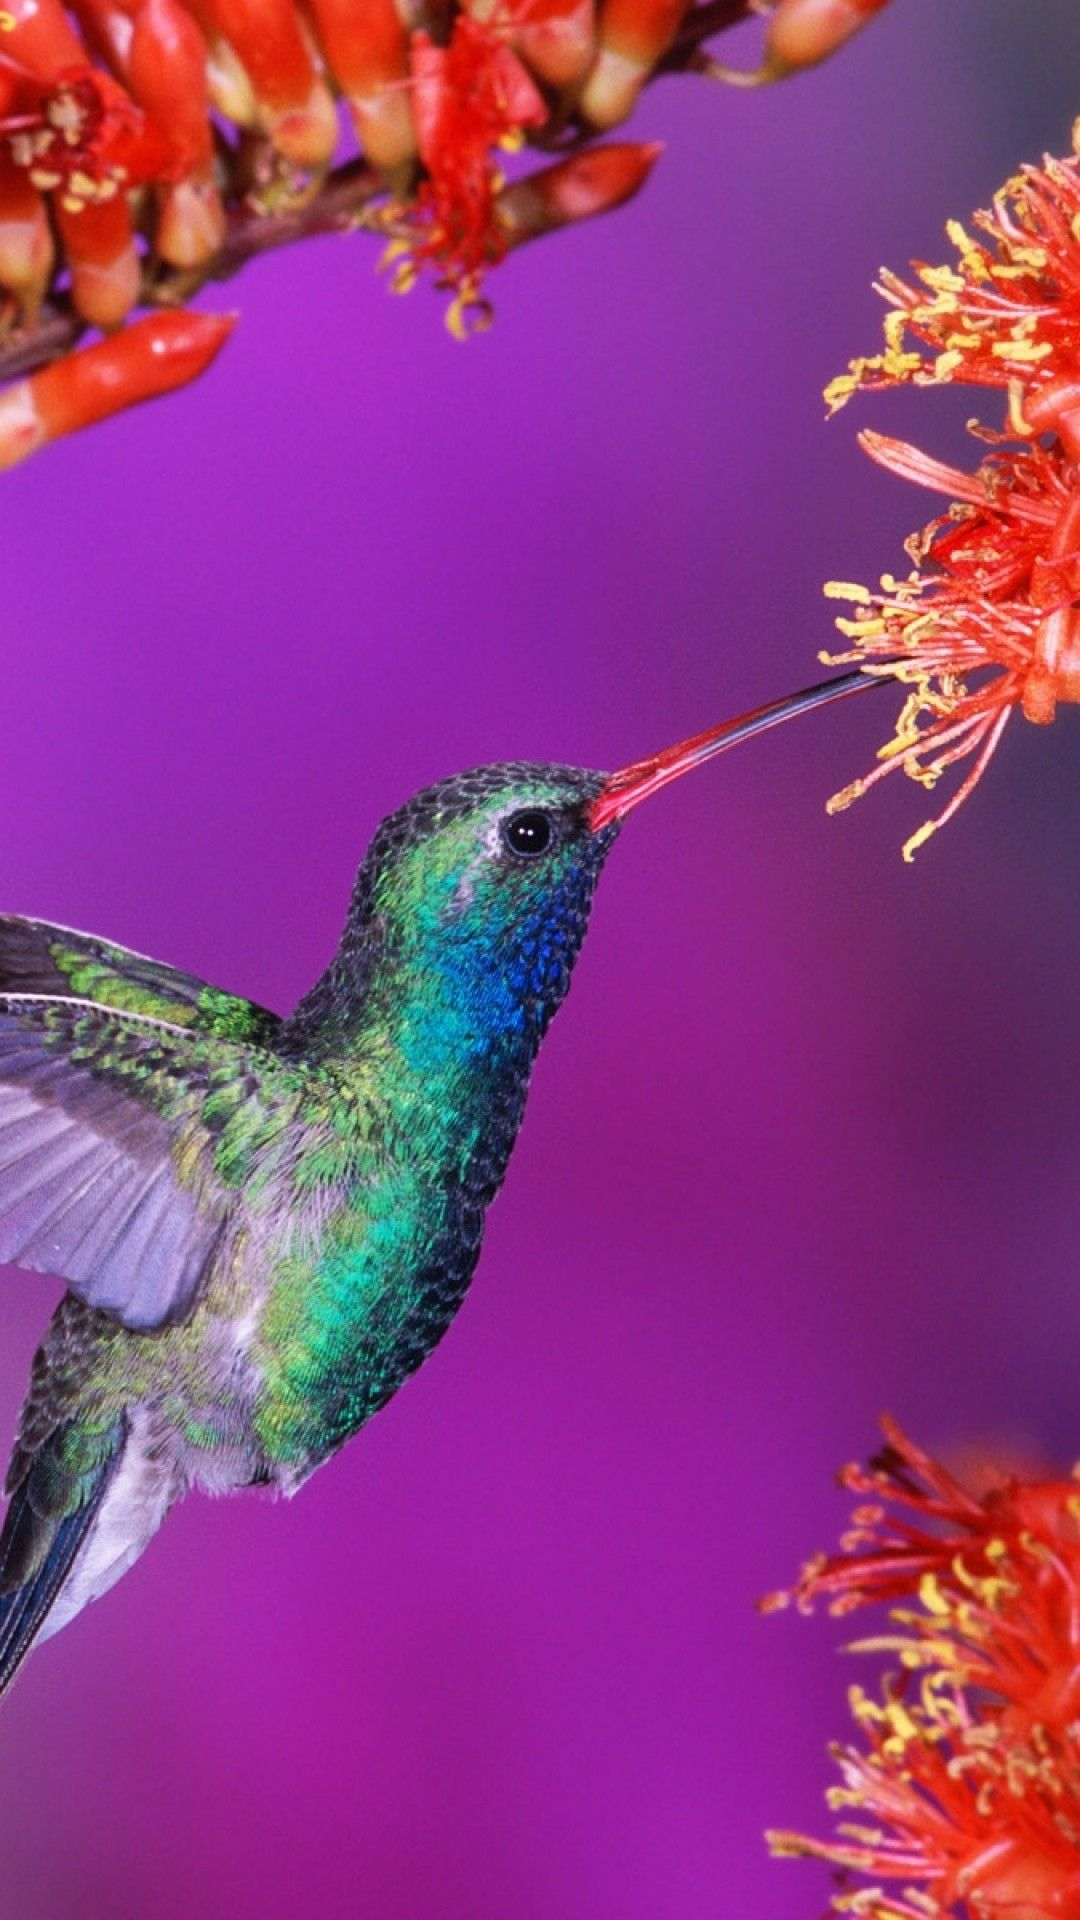 Hummingbird Wallpaper Background (70+ images) (With images